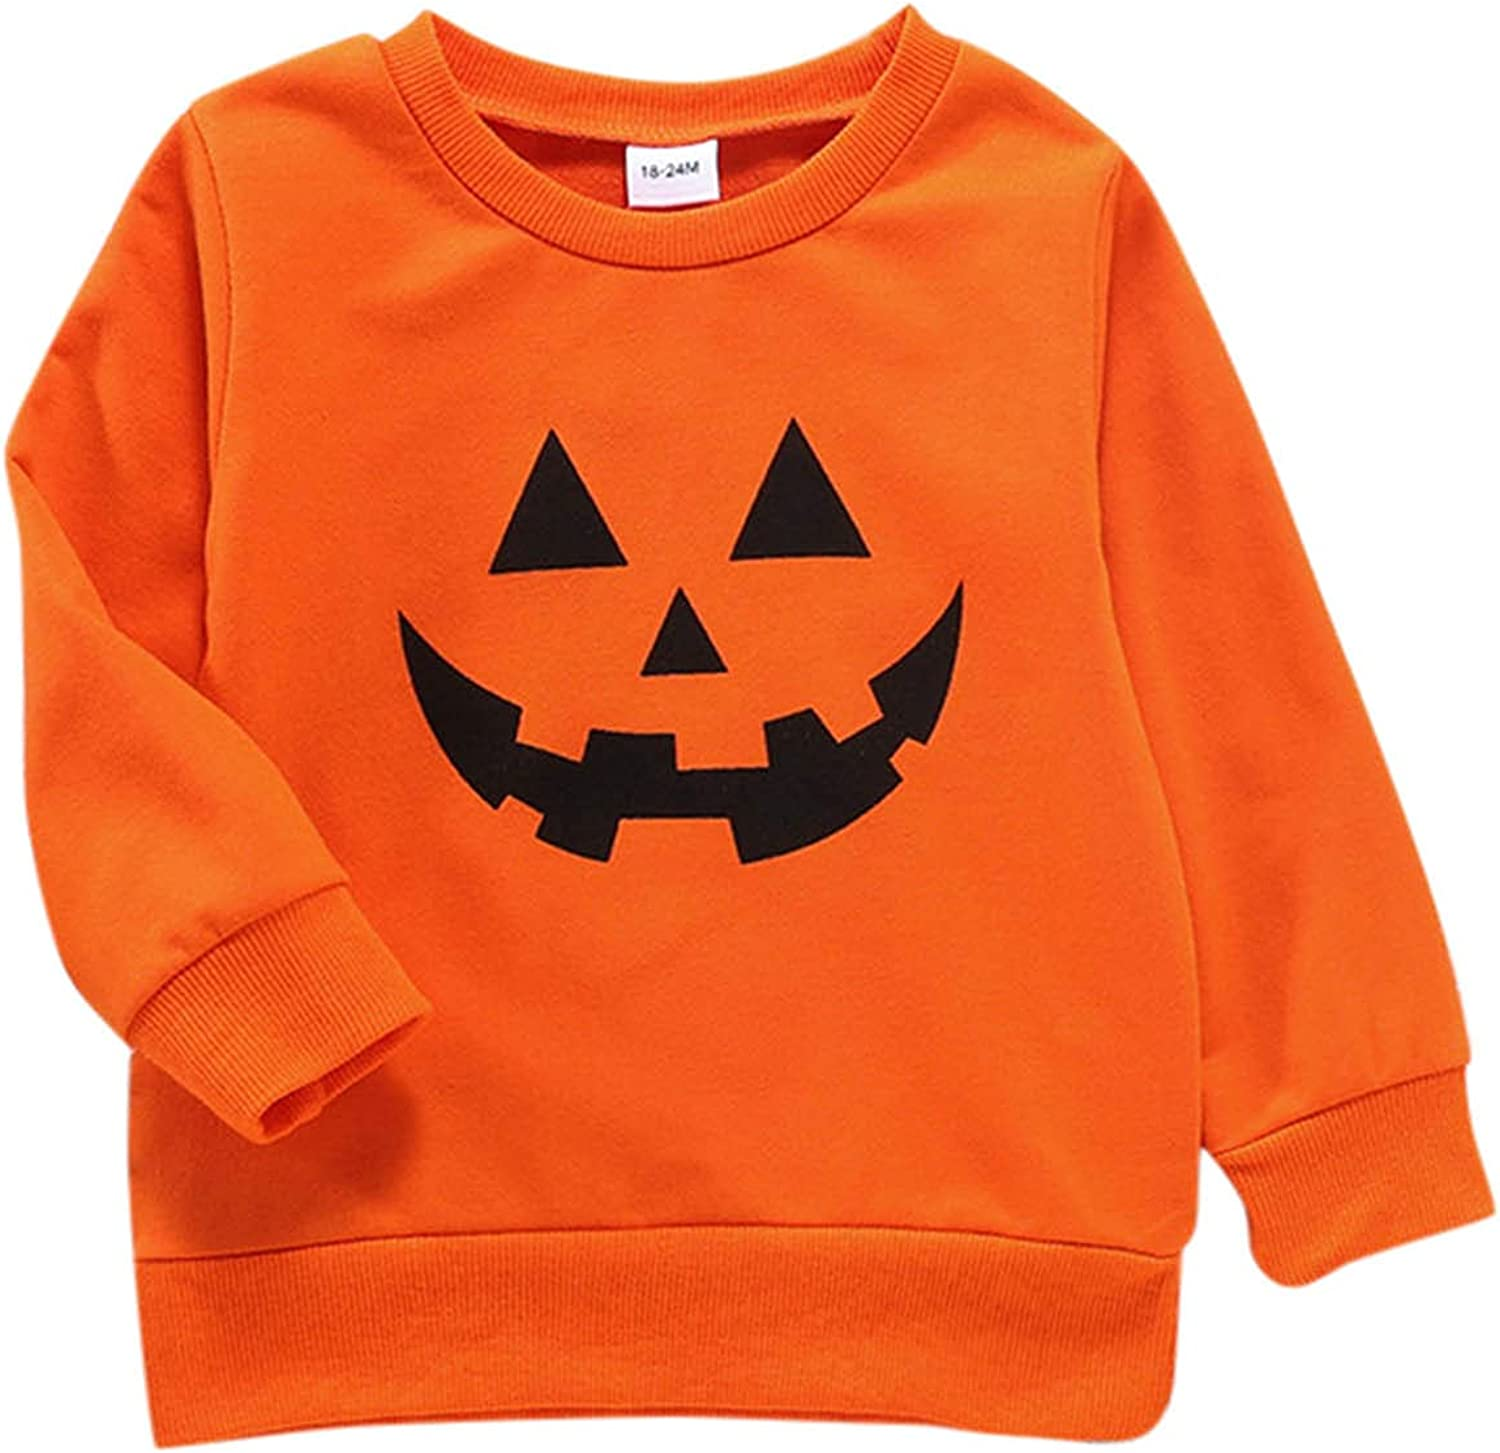 Toddler New color Baby Sweater Blouse Kansas City Mall Warm Girls Boys Pullover Kids Childs